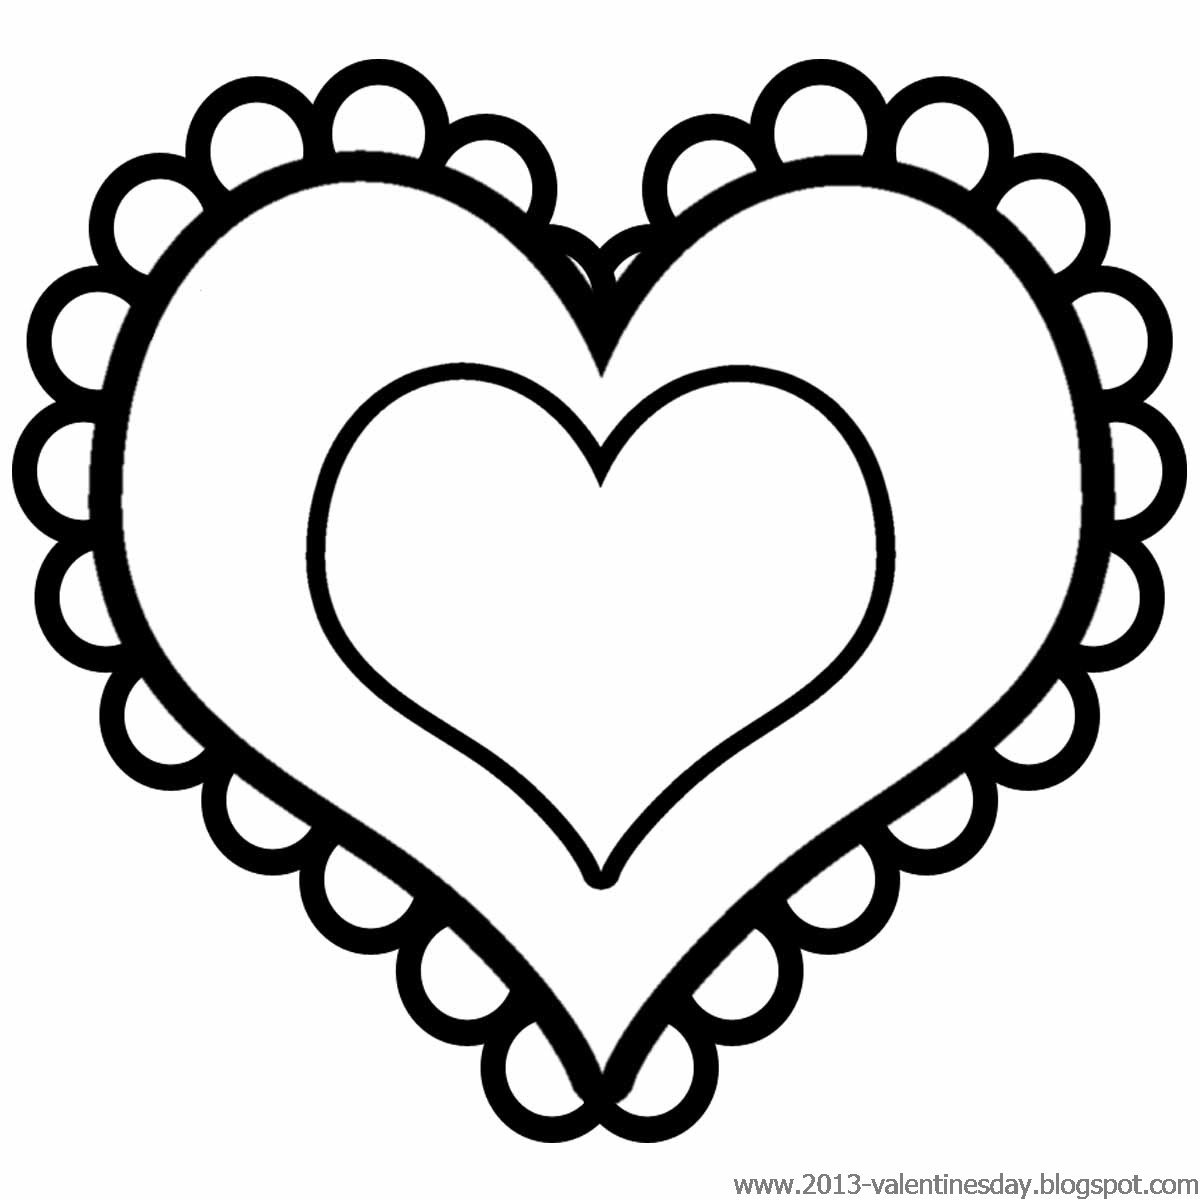 Clipart hearts black and white graphic library library Heart Black And White Clipart - Clipart Kid graphic library library